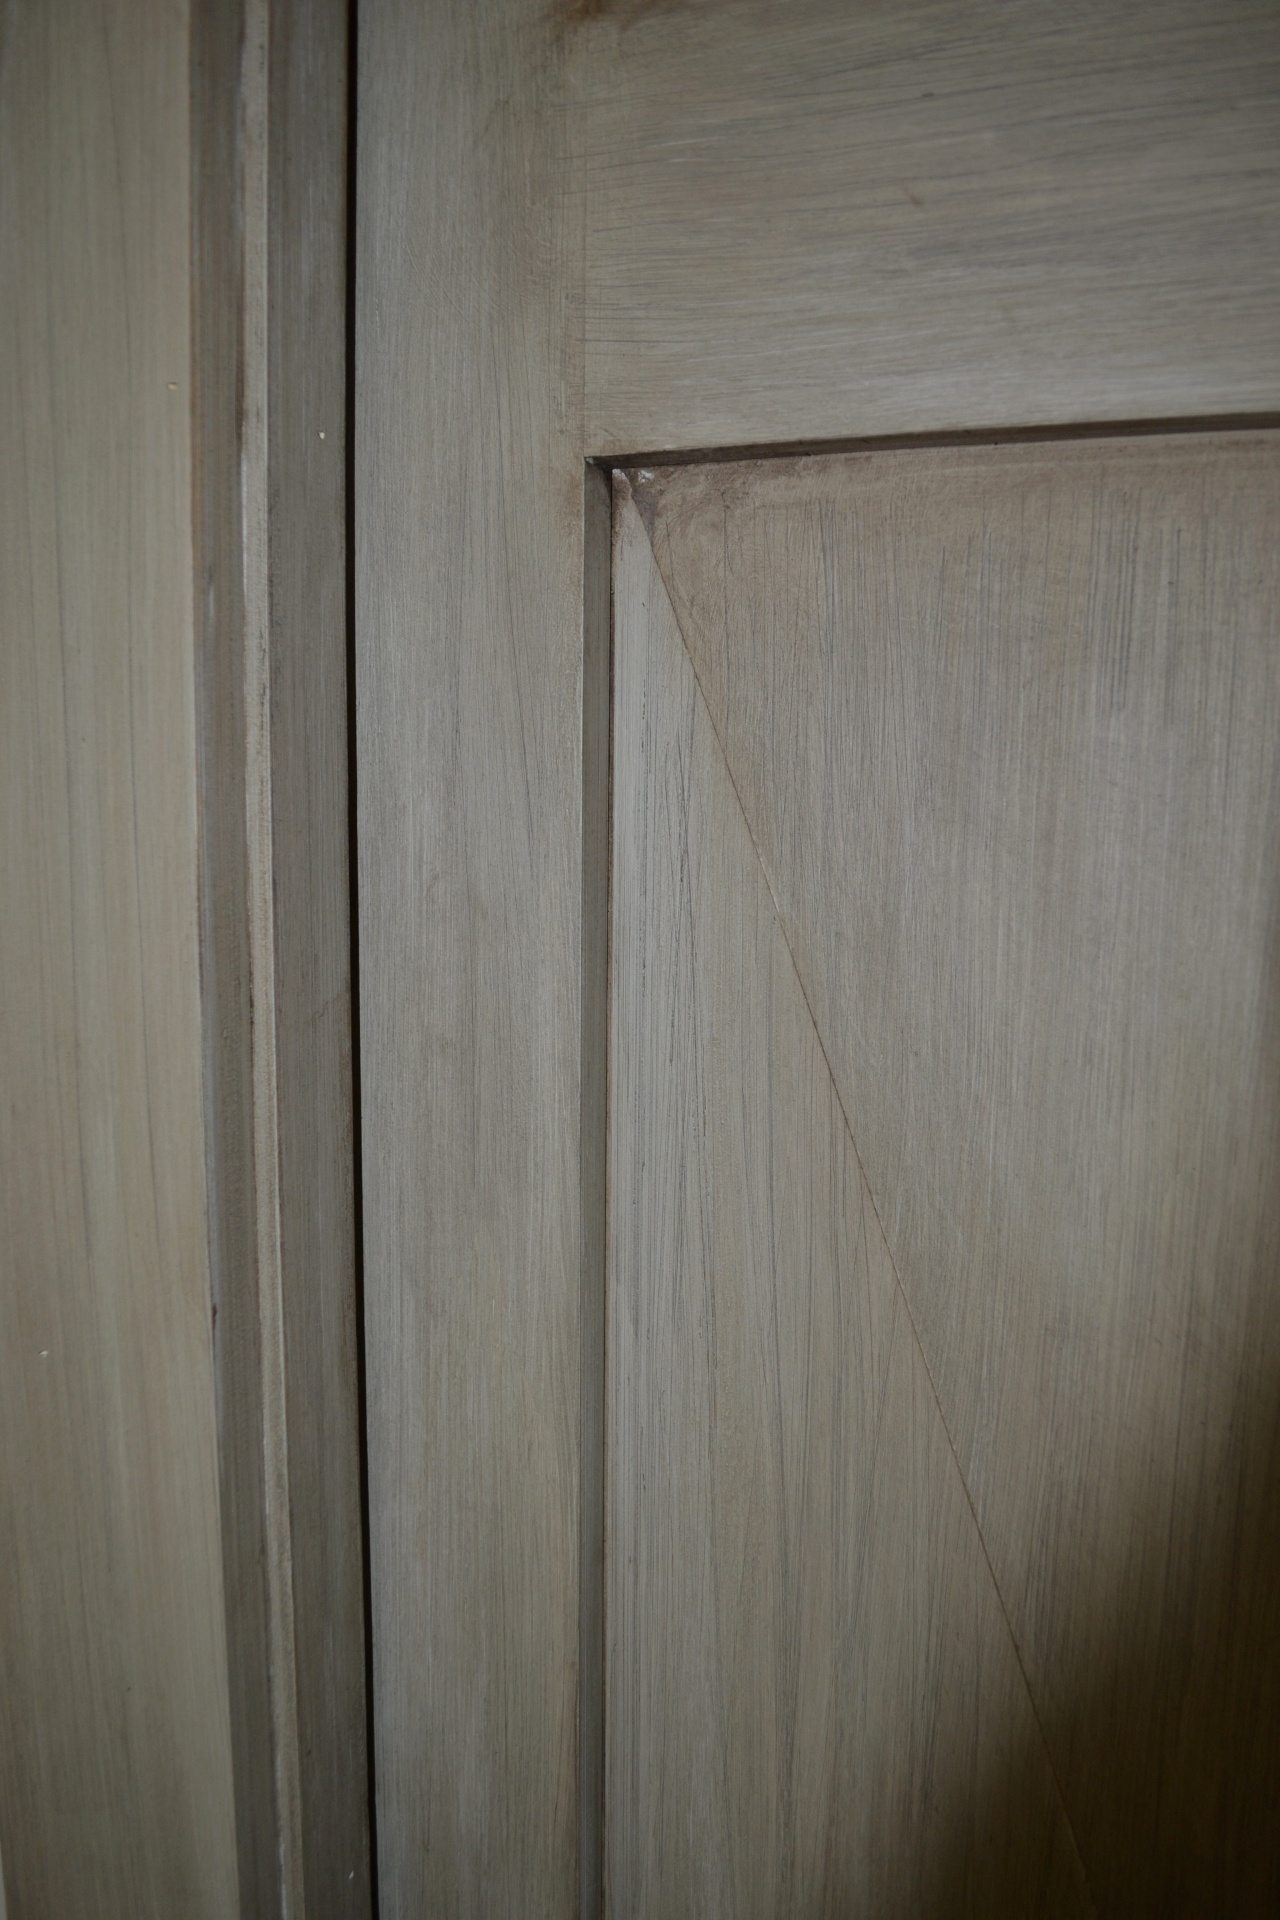 rustic finish on the door